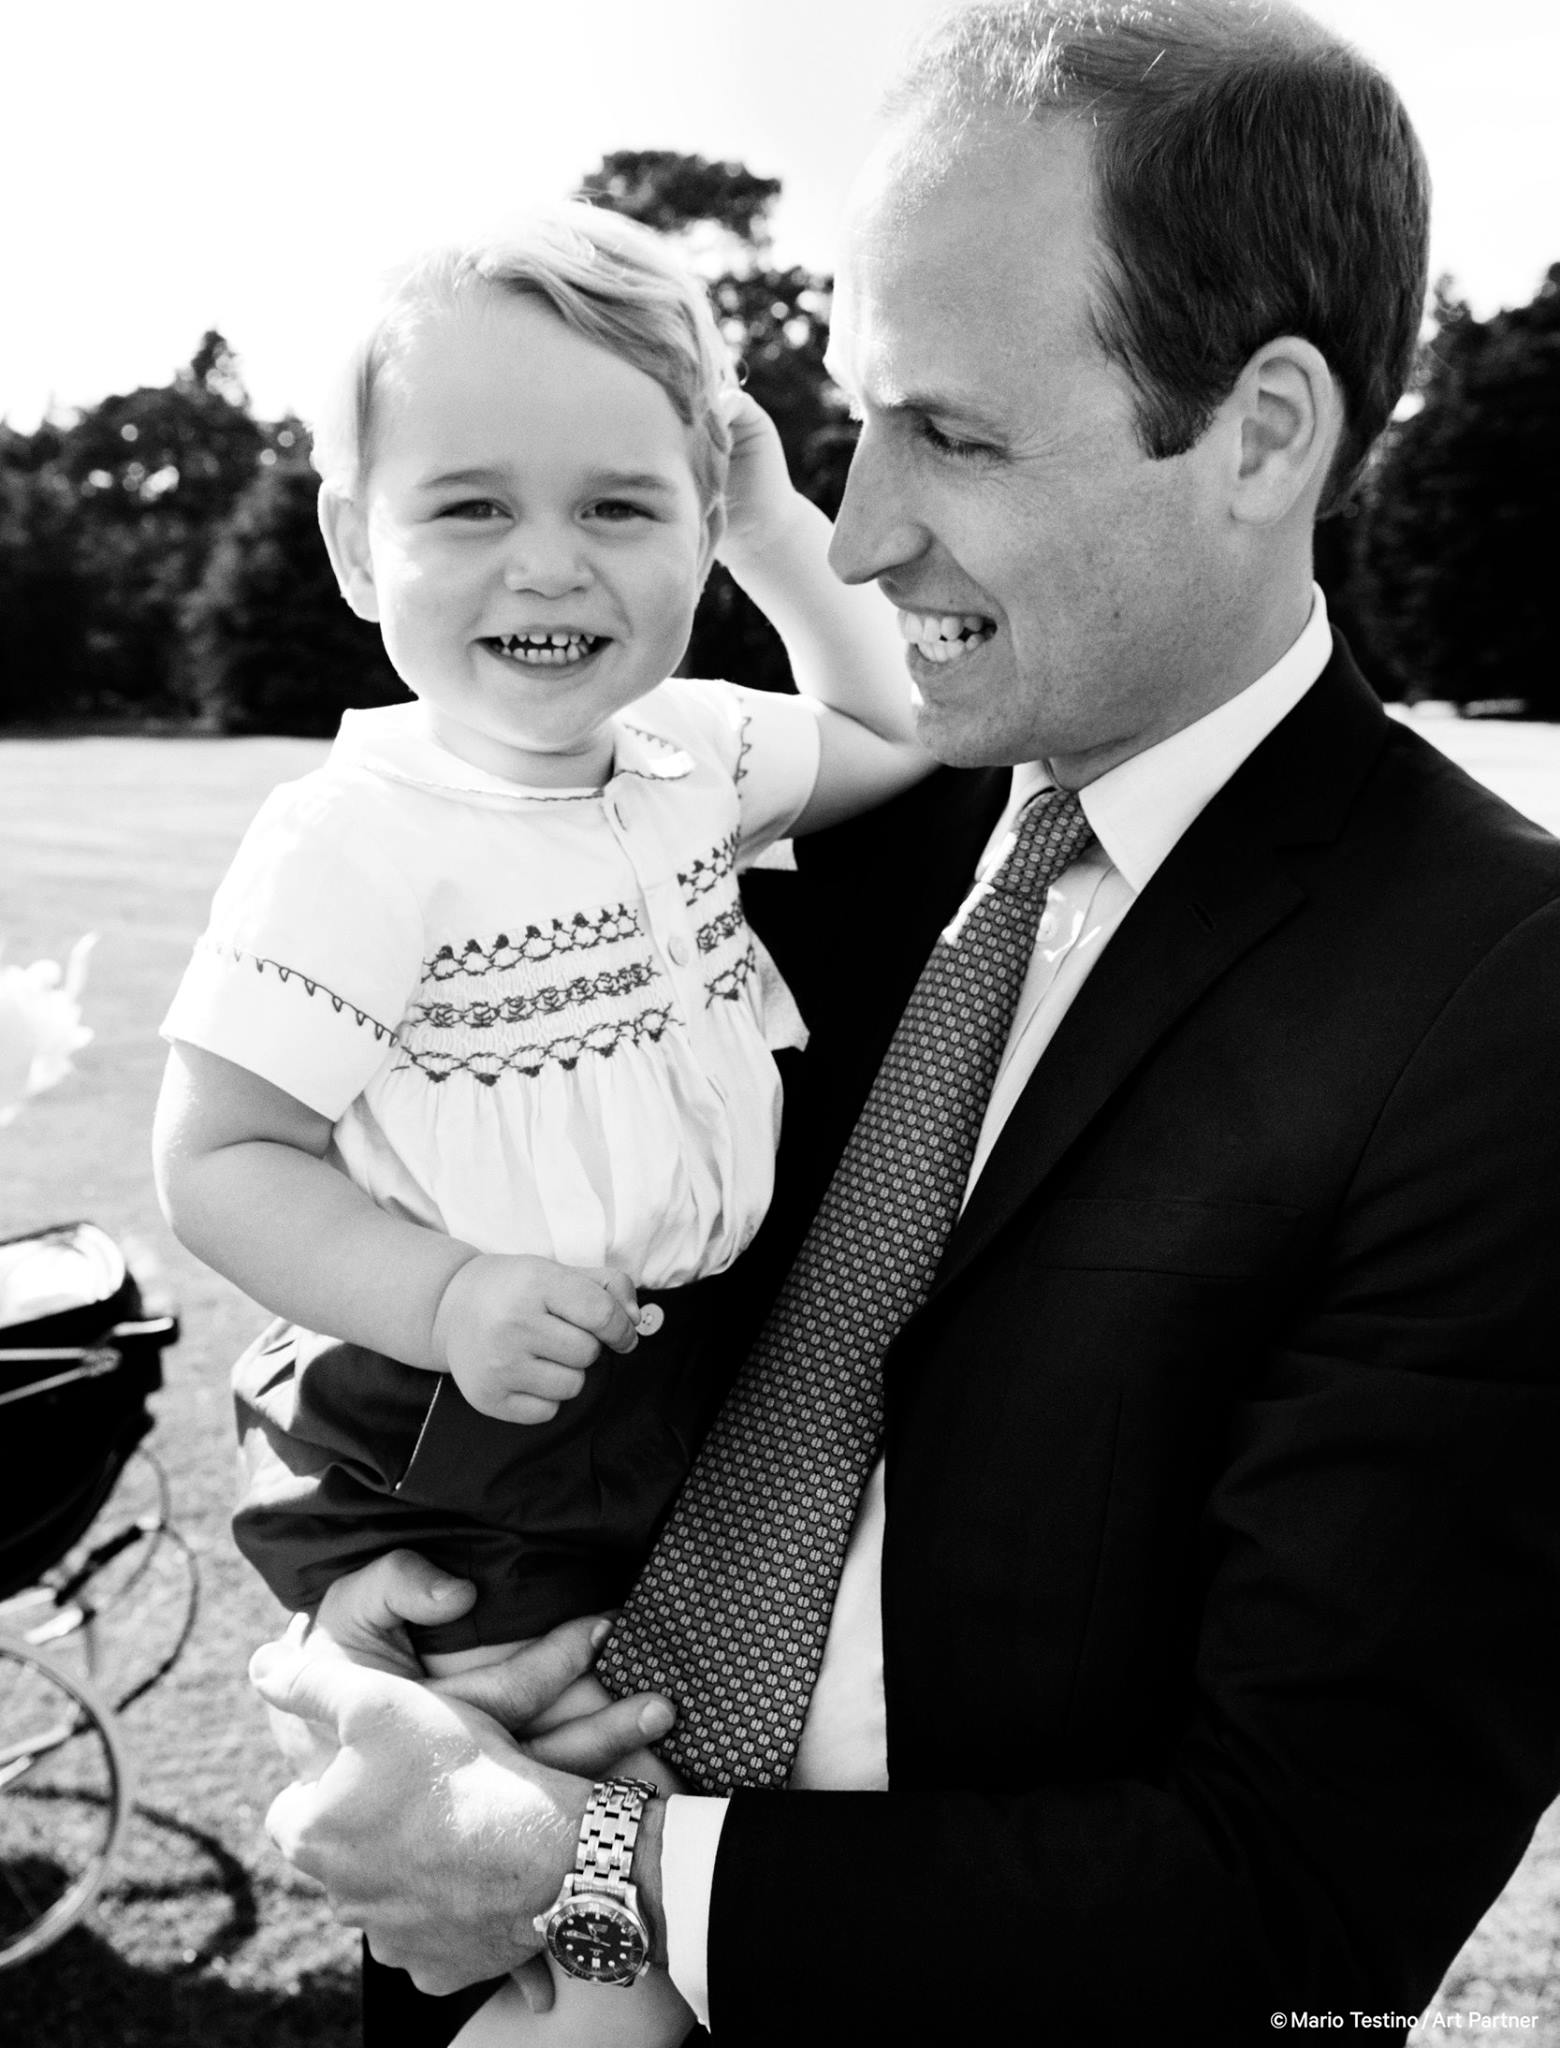 William and George after Princess Charlotte's christneing